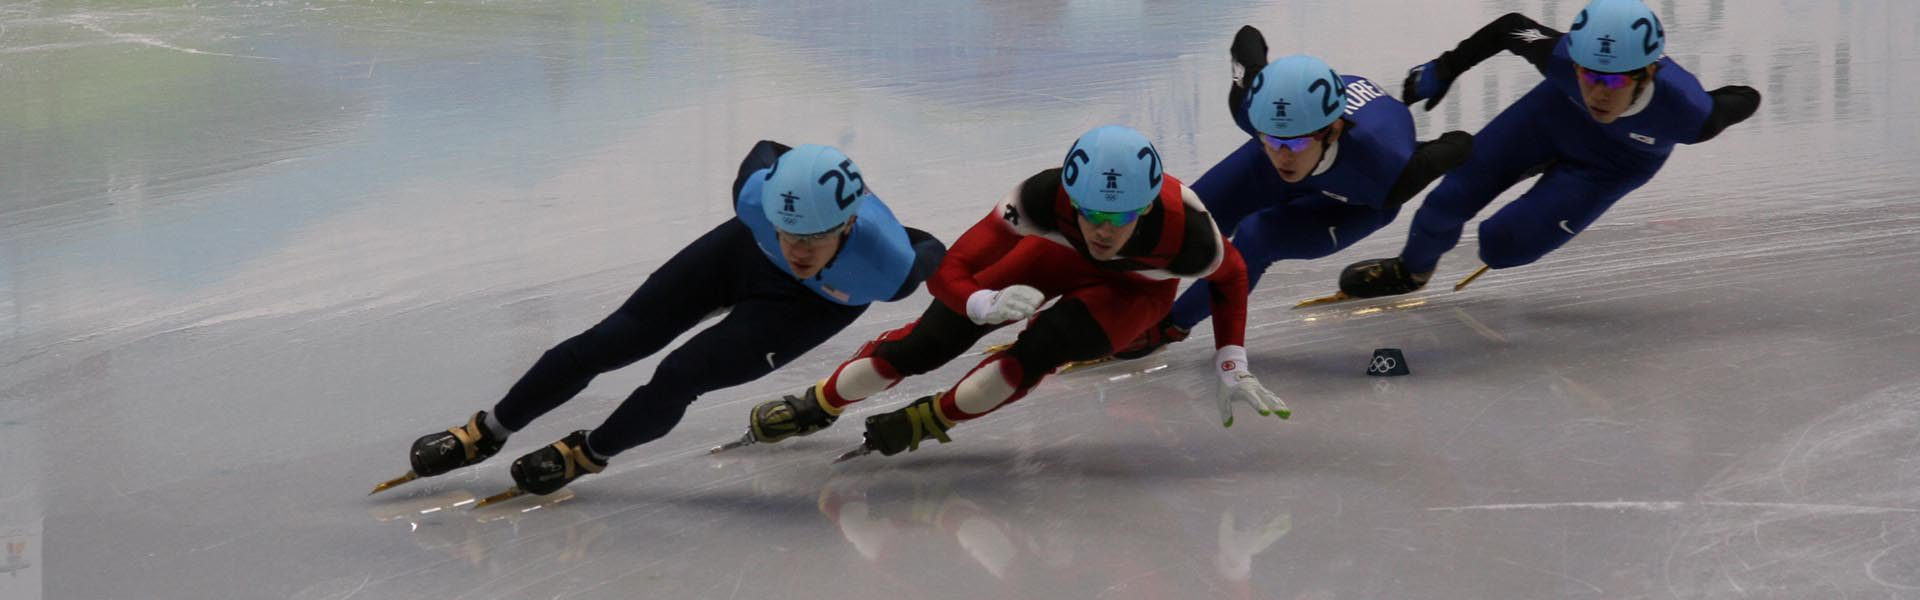 Speed Skating Olympics